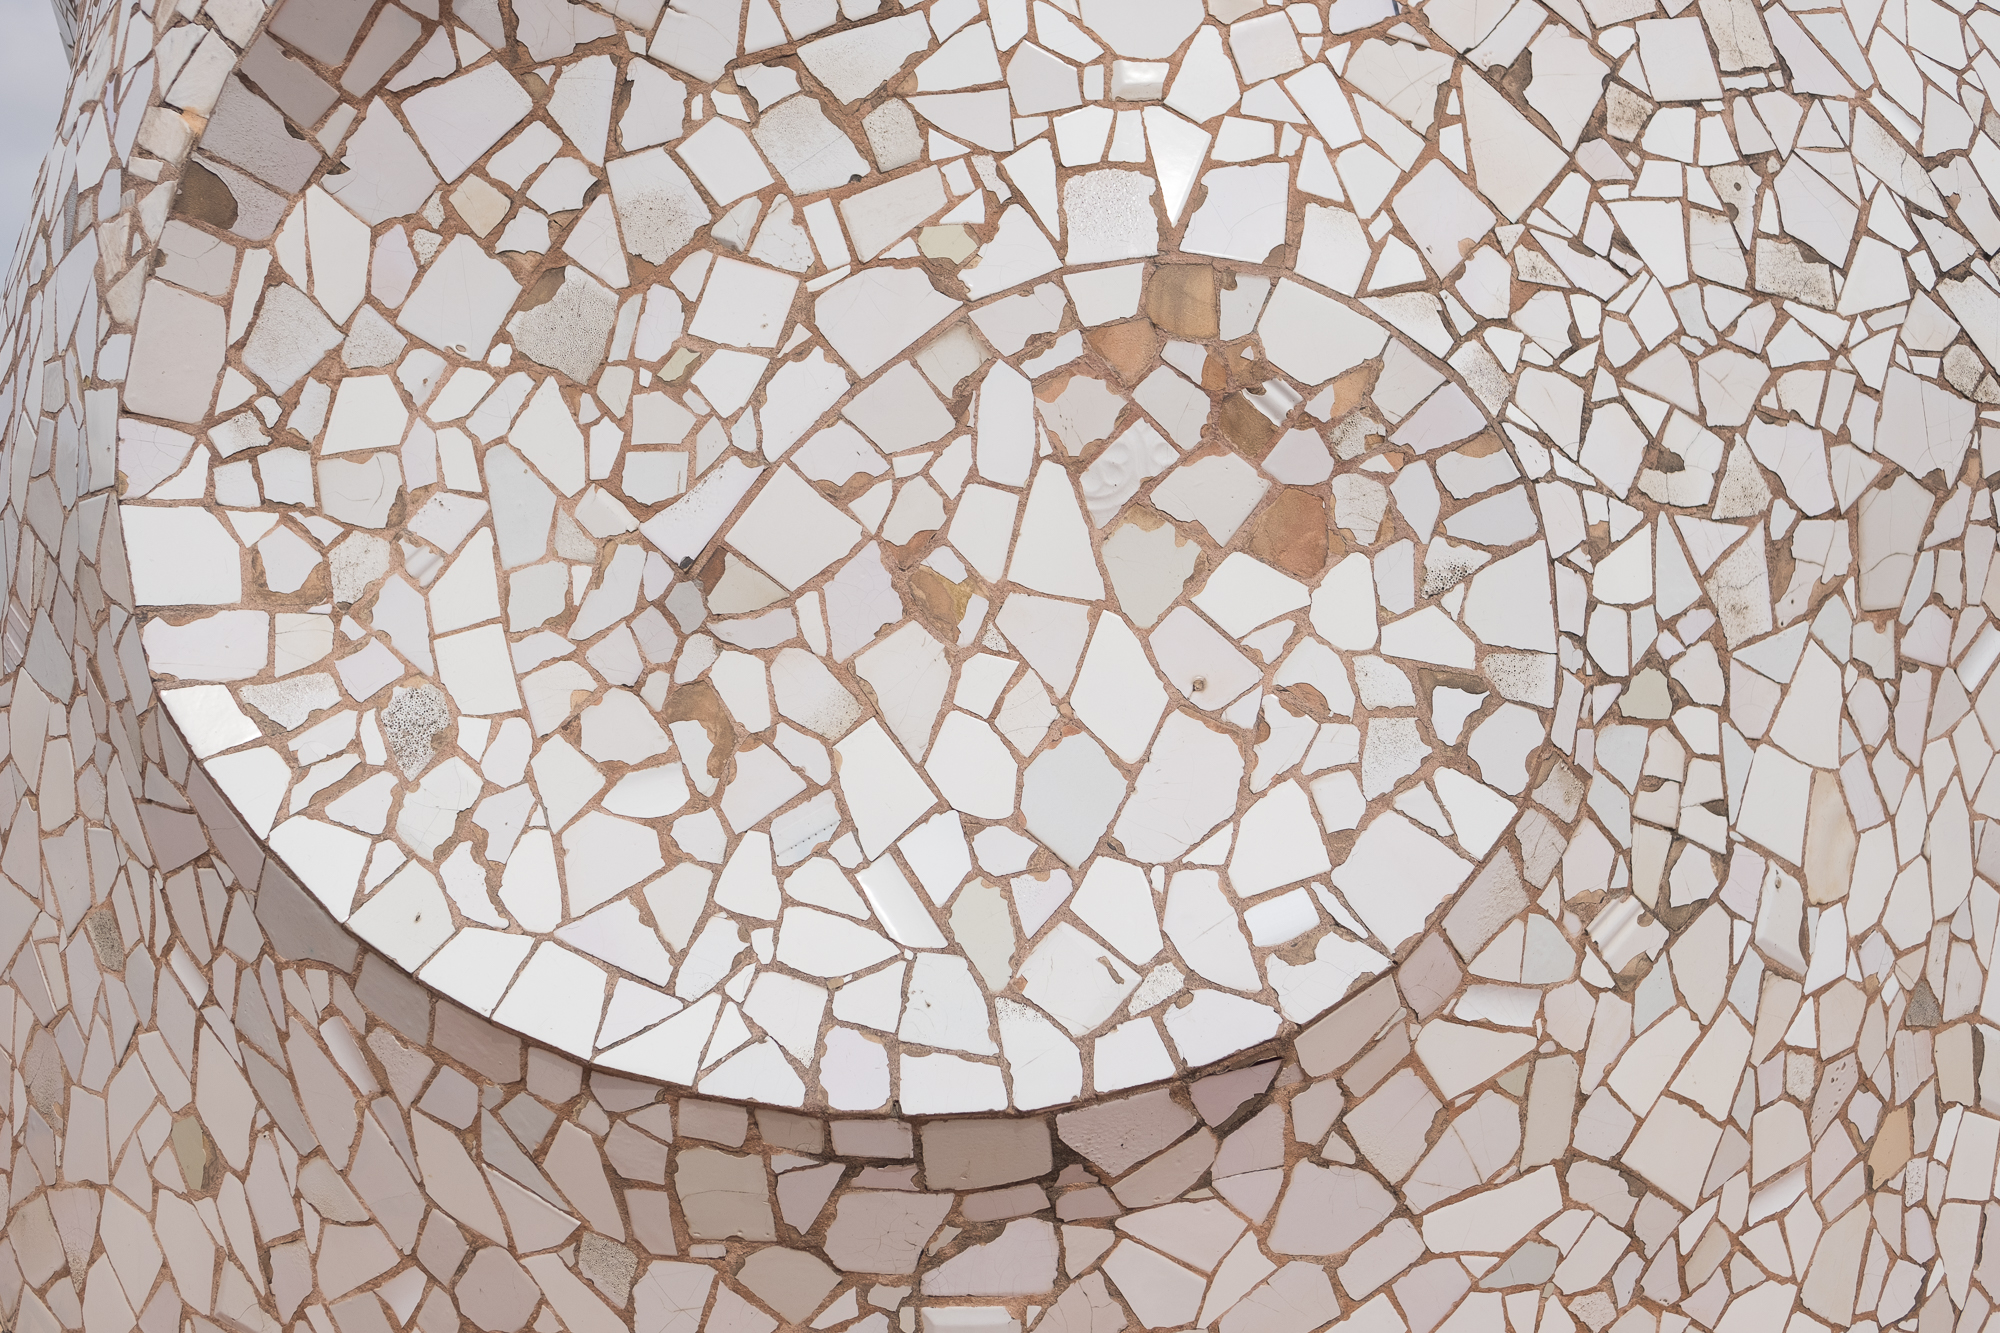 A close photo of a mosaic at Casa Milà. The tiles are roughly broken and all white - they're arranged in a spiral pattern.